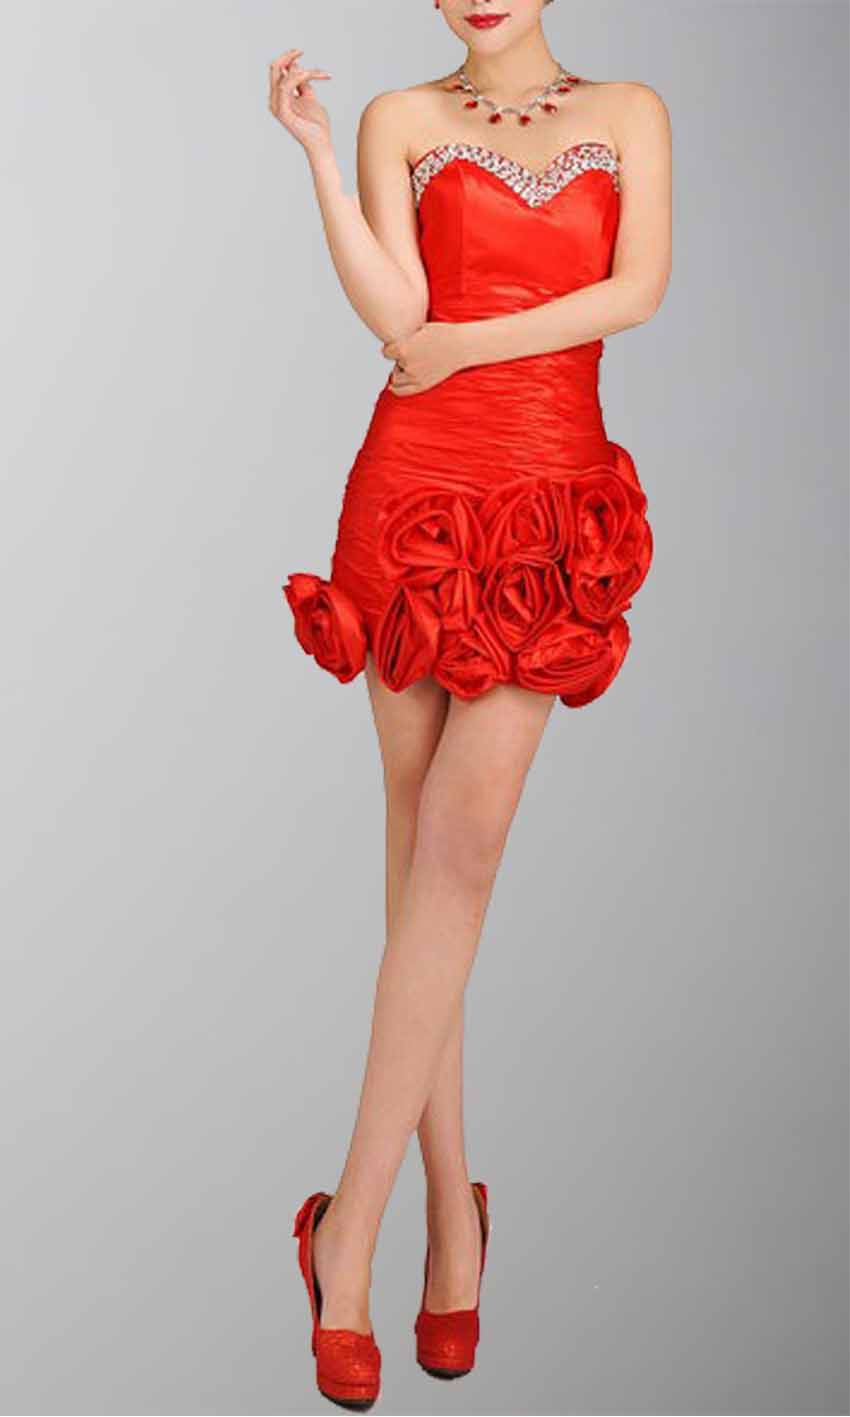 Sheath Flame Taffeta Floral Cocktail Dress KSP031 [KSP031] - £98.00 : Cheap Prom Dresses Uk, Bridesmaid Dresses, 2014 Prom & Evening Dresses, Look for cheap elegant prom dresses 2014, cocktail gowns, or dresses for special occasions? kissprom.co.uk offers various bridesmaid dresses, evening dress, free shipping to UK etc.